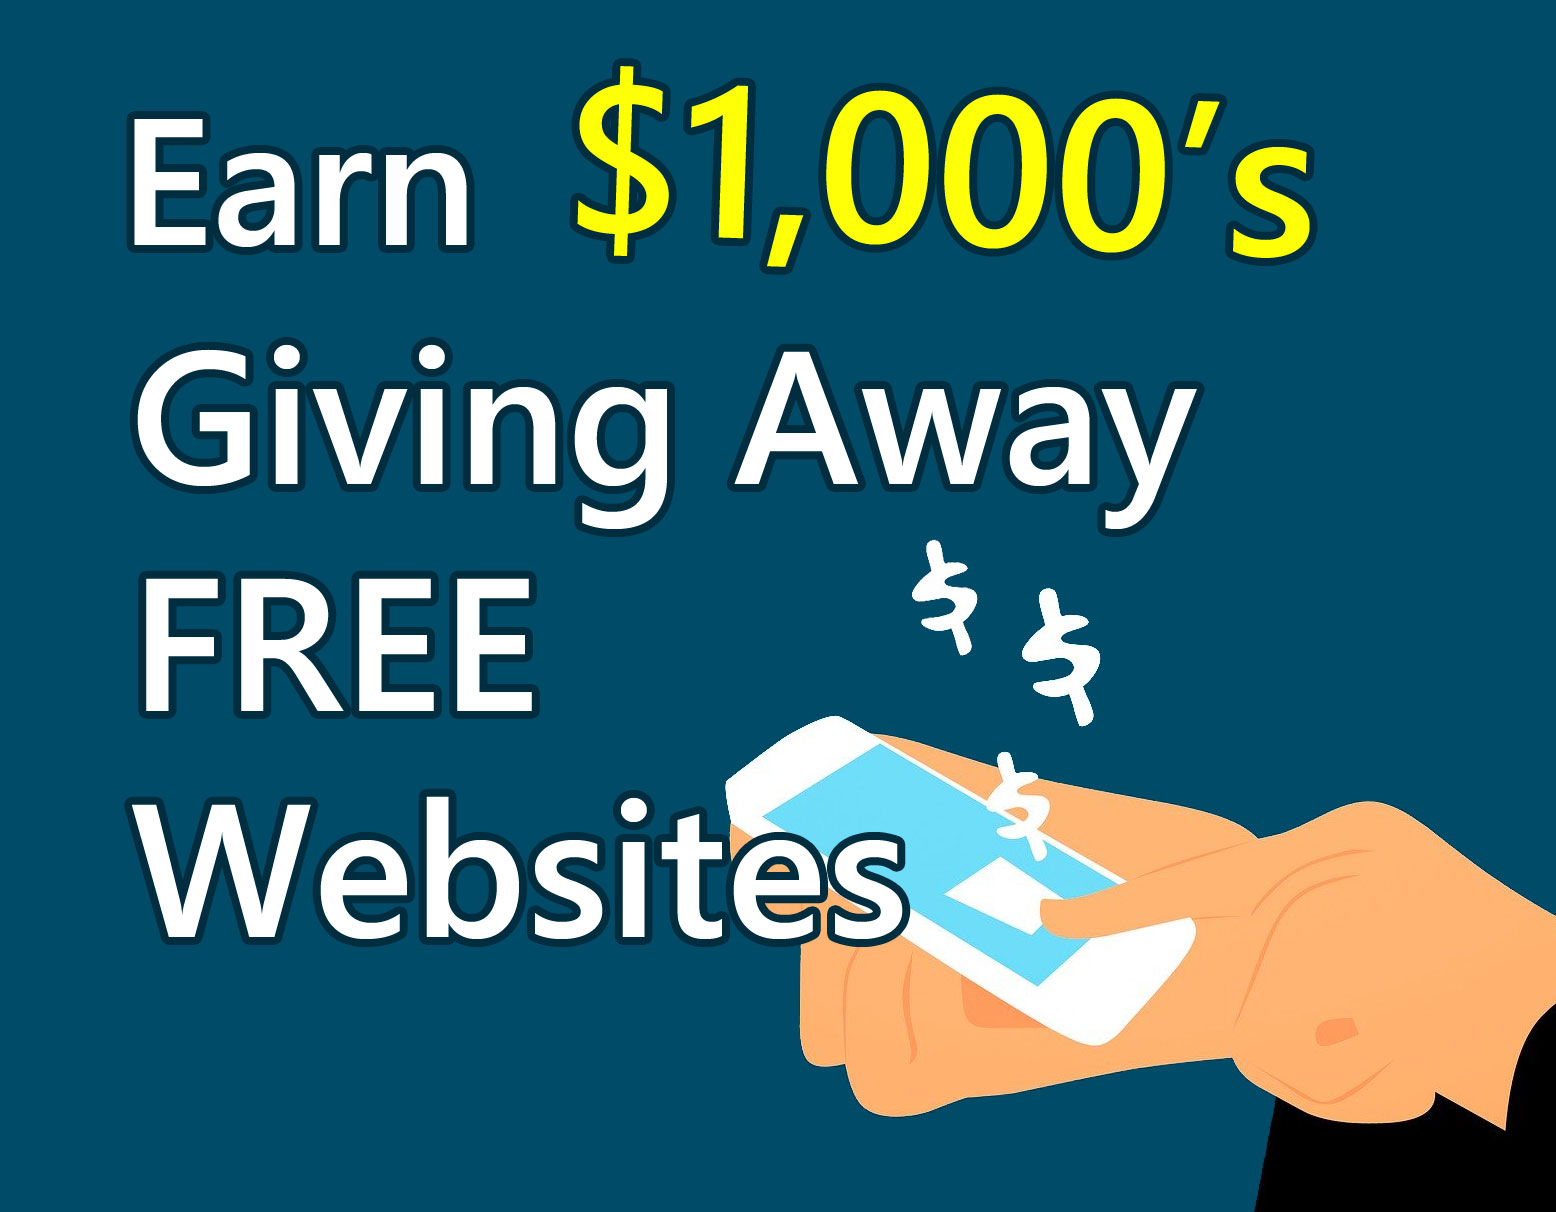 Make Money Giving Away Free Websites